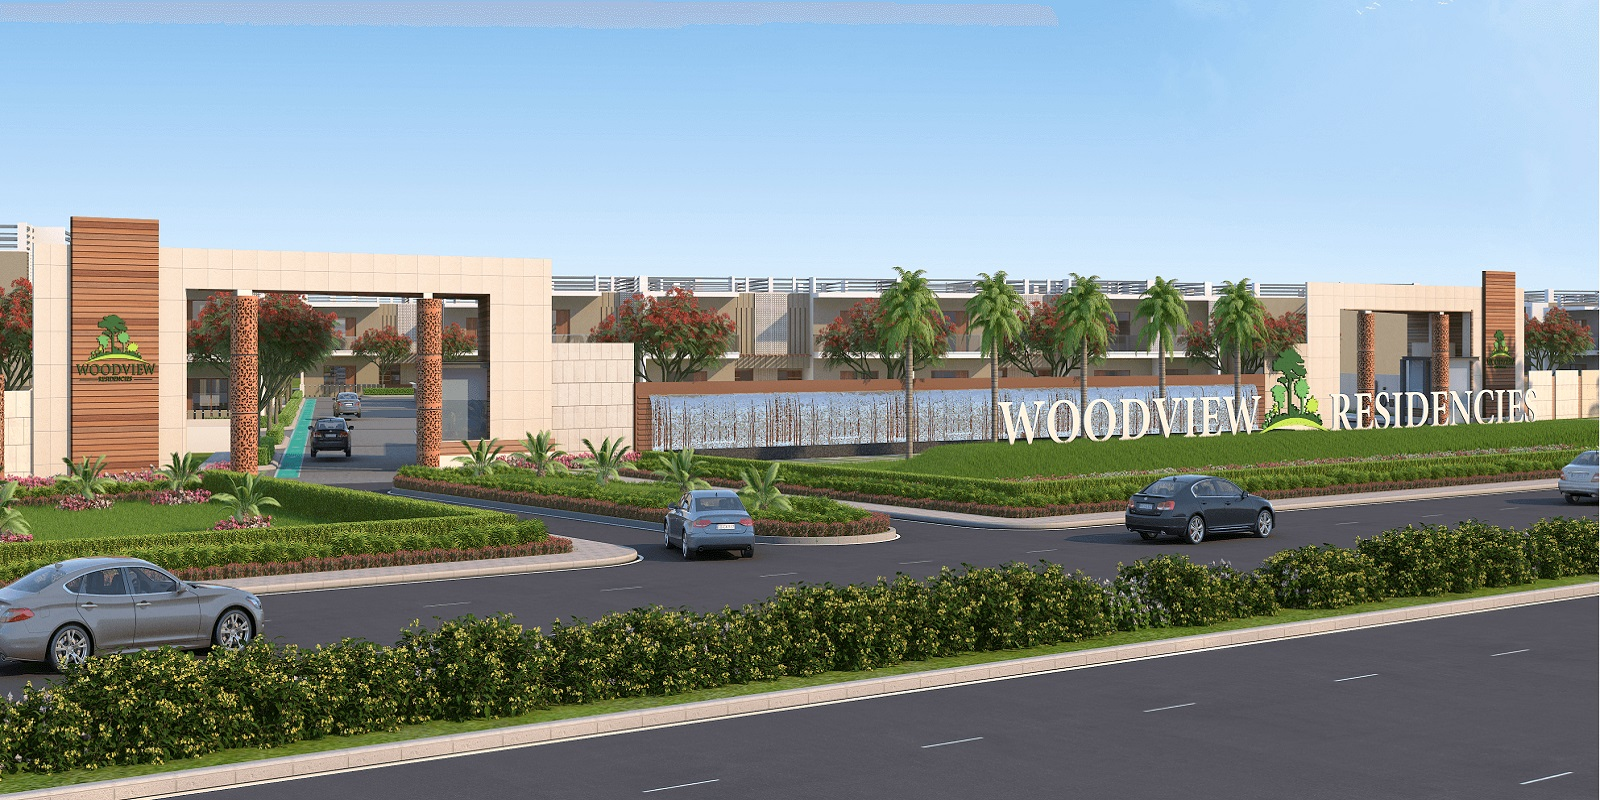 orris woodview residencies project project large image1